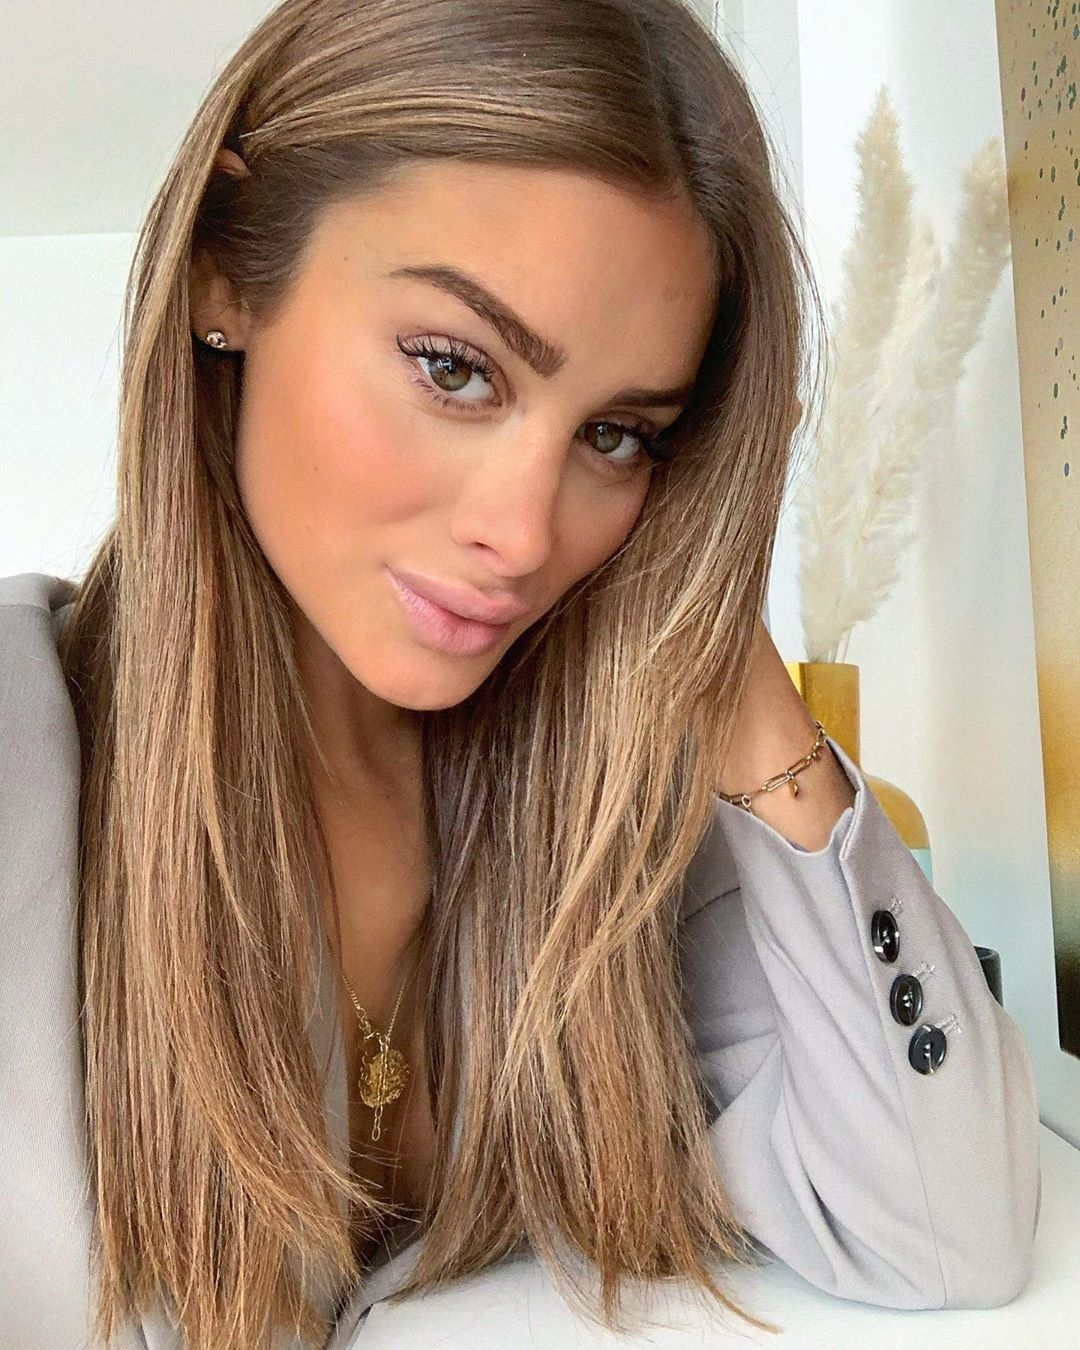 Angelina Lilienne On Instagram The Flower That Blooms In Adversity Is The Rarest Most Beautiful O In 2020 Honey Blonde Hair Hair Inspiration Color Light Brown Hair